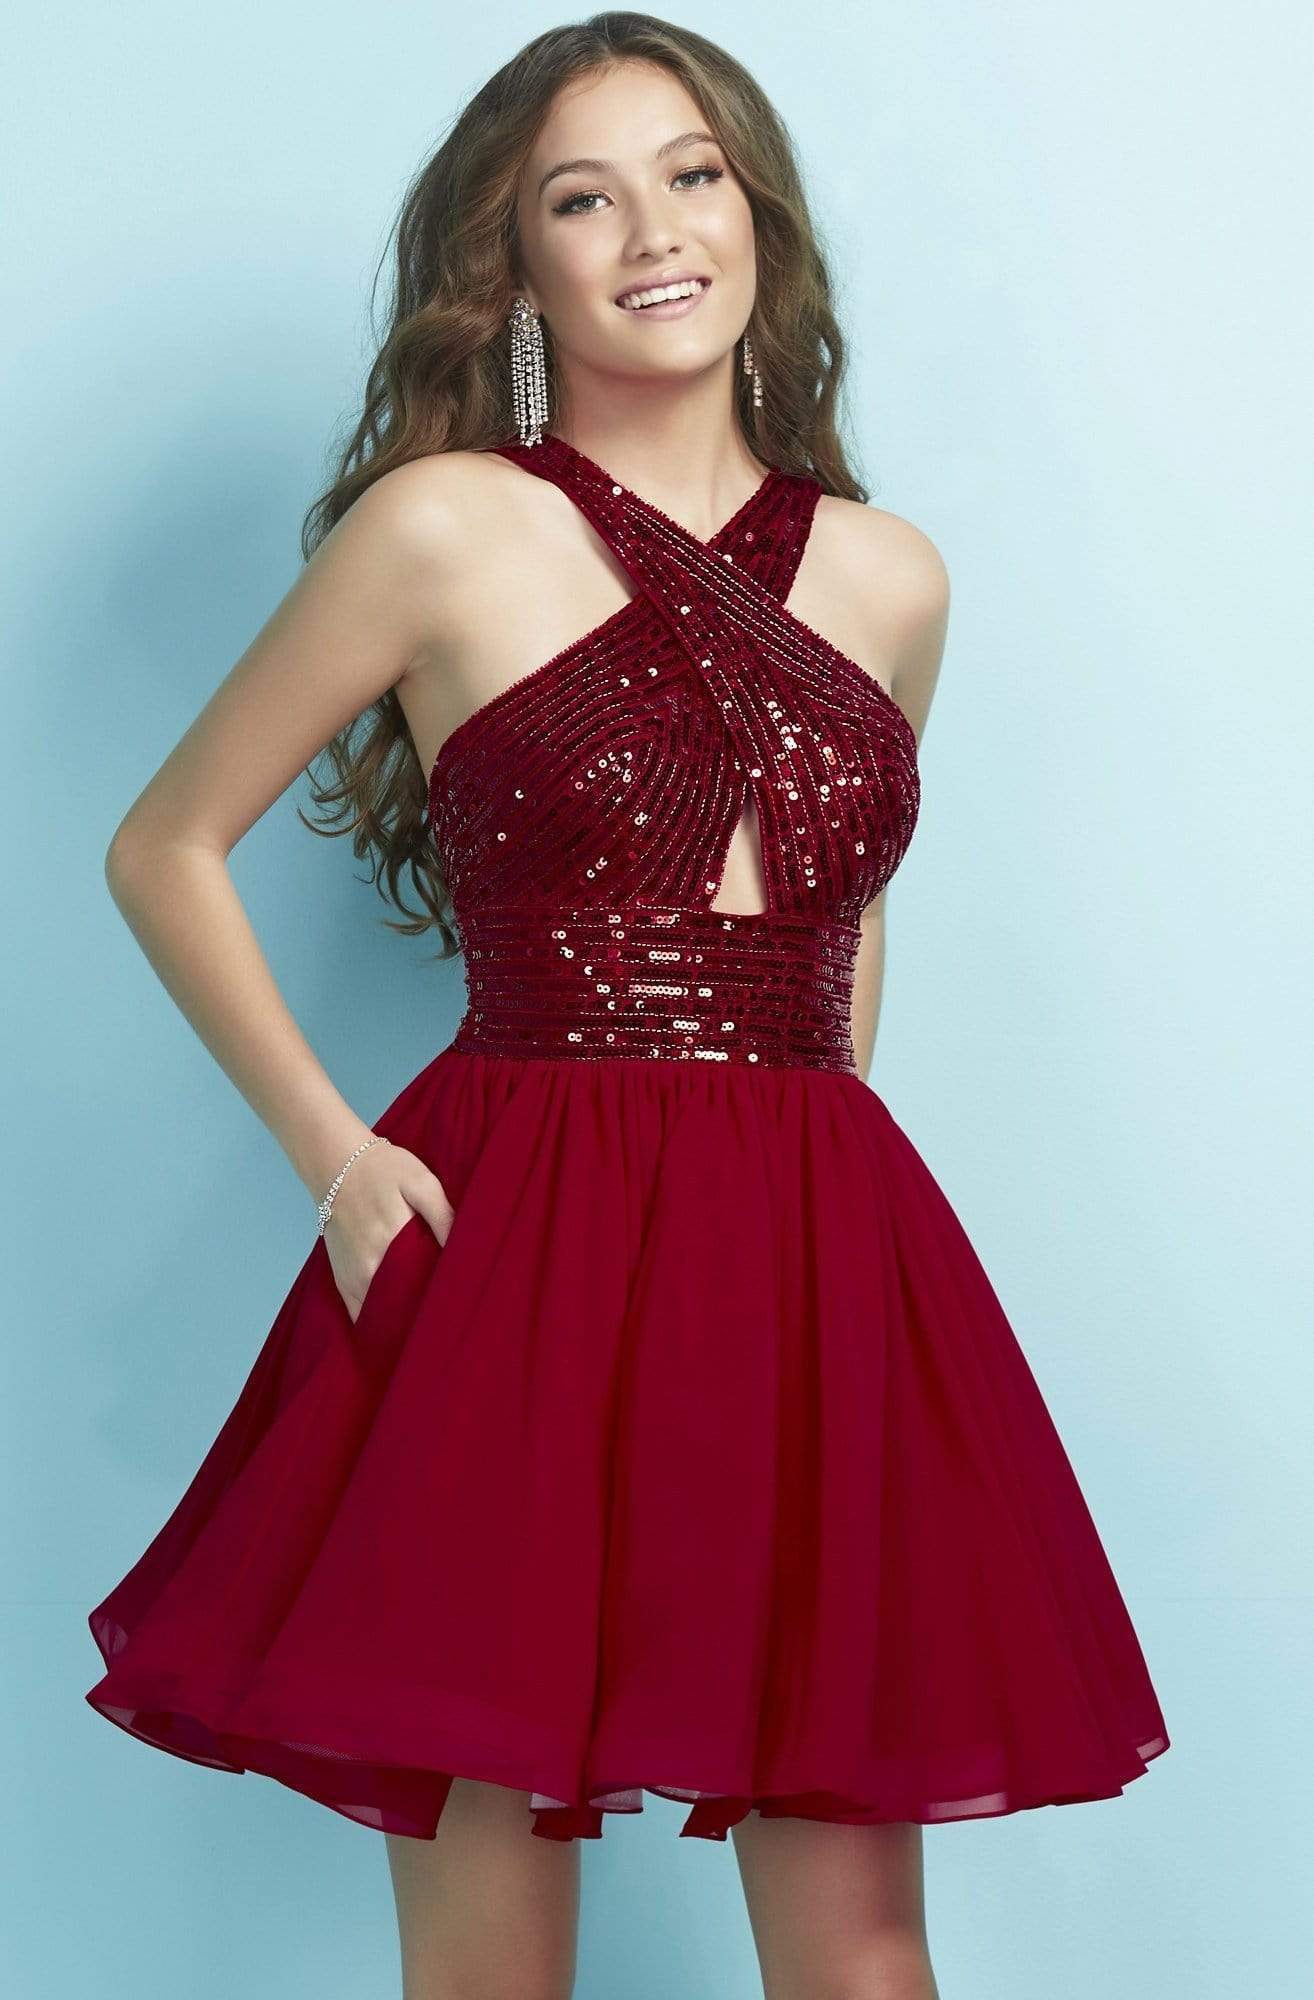 Tiffany Homecoming - 27261 Sequined Crisscross Bodice Cutout Dress from Tiffany Homecoming